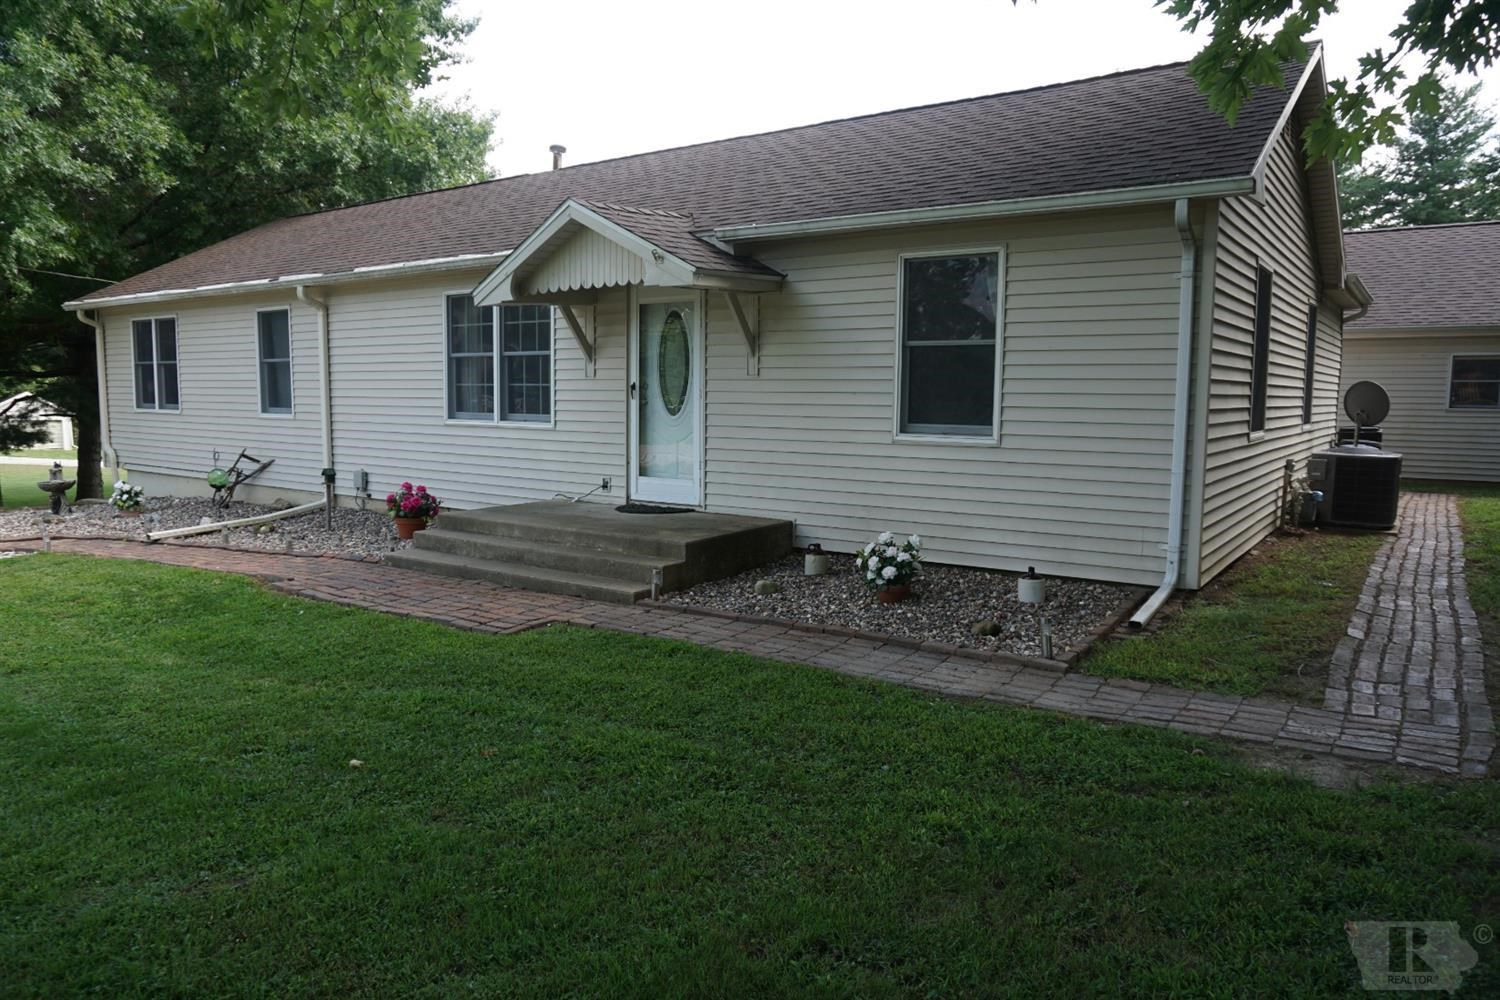 Move-in Ready, 3 Bedroom Home on 2 1/4 Acres Near Keokuk